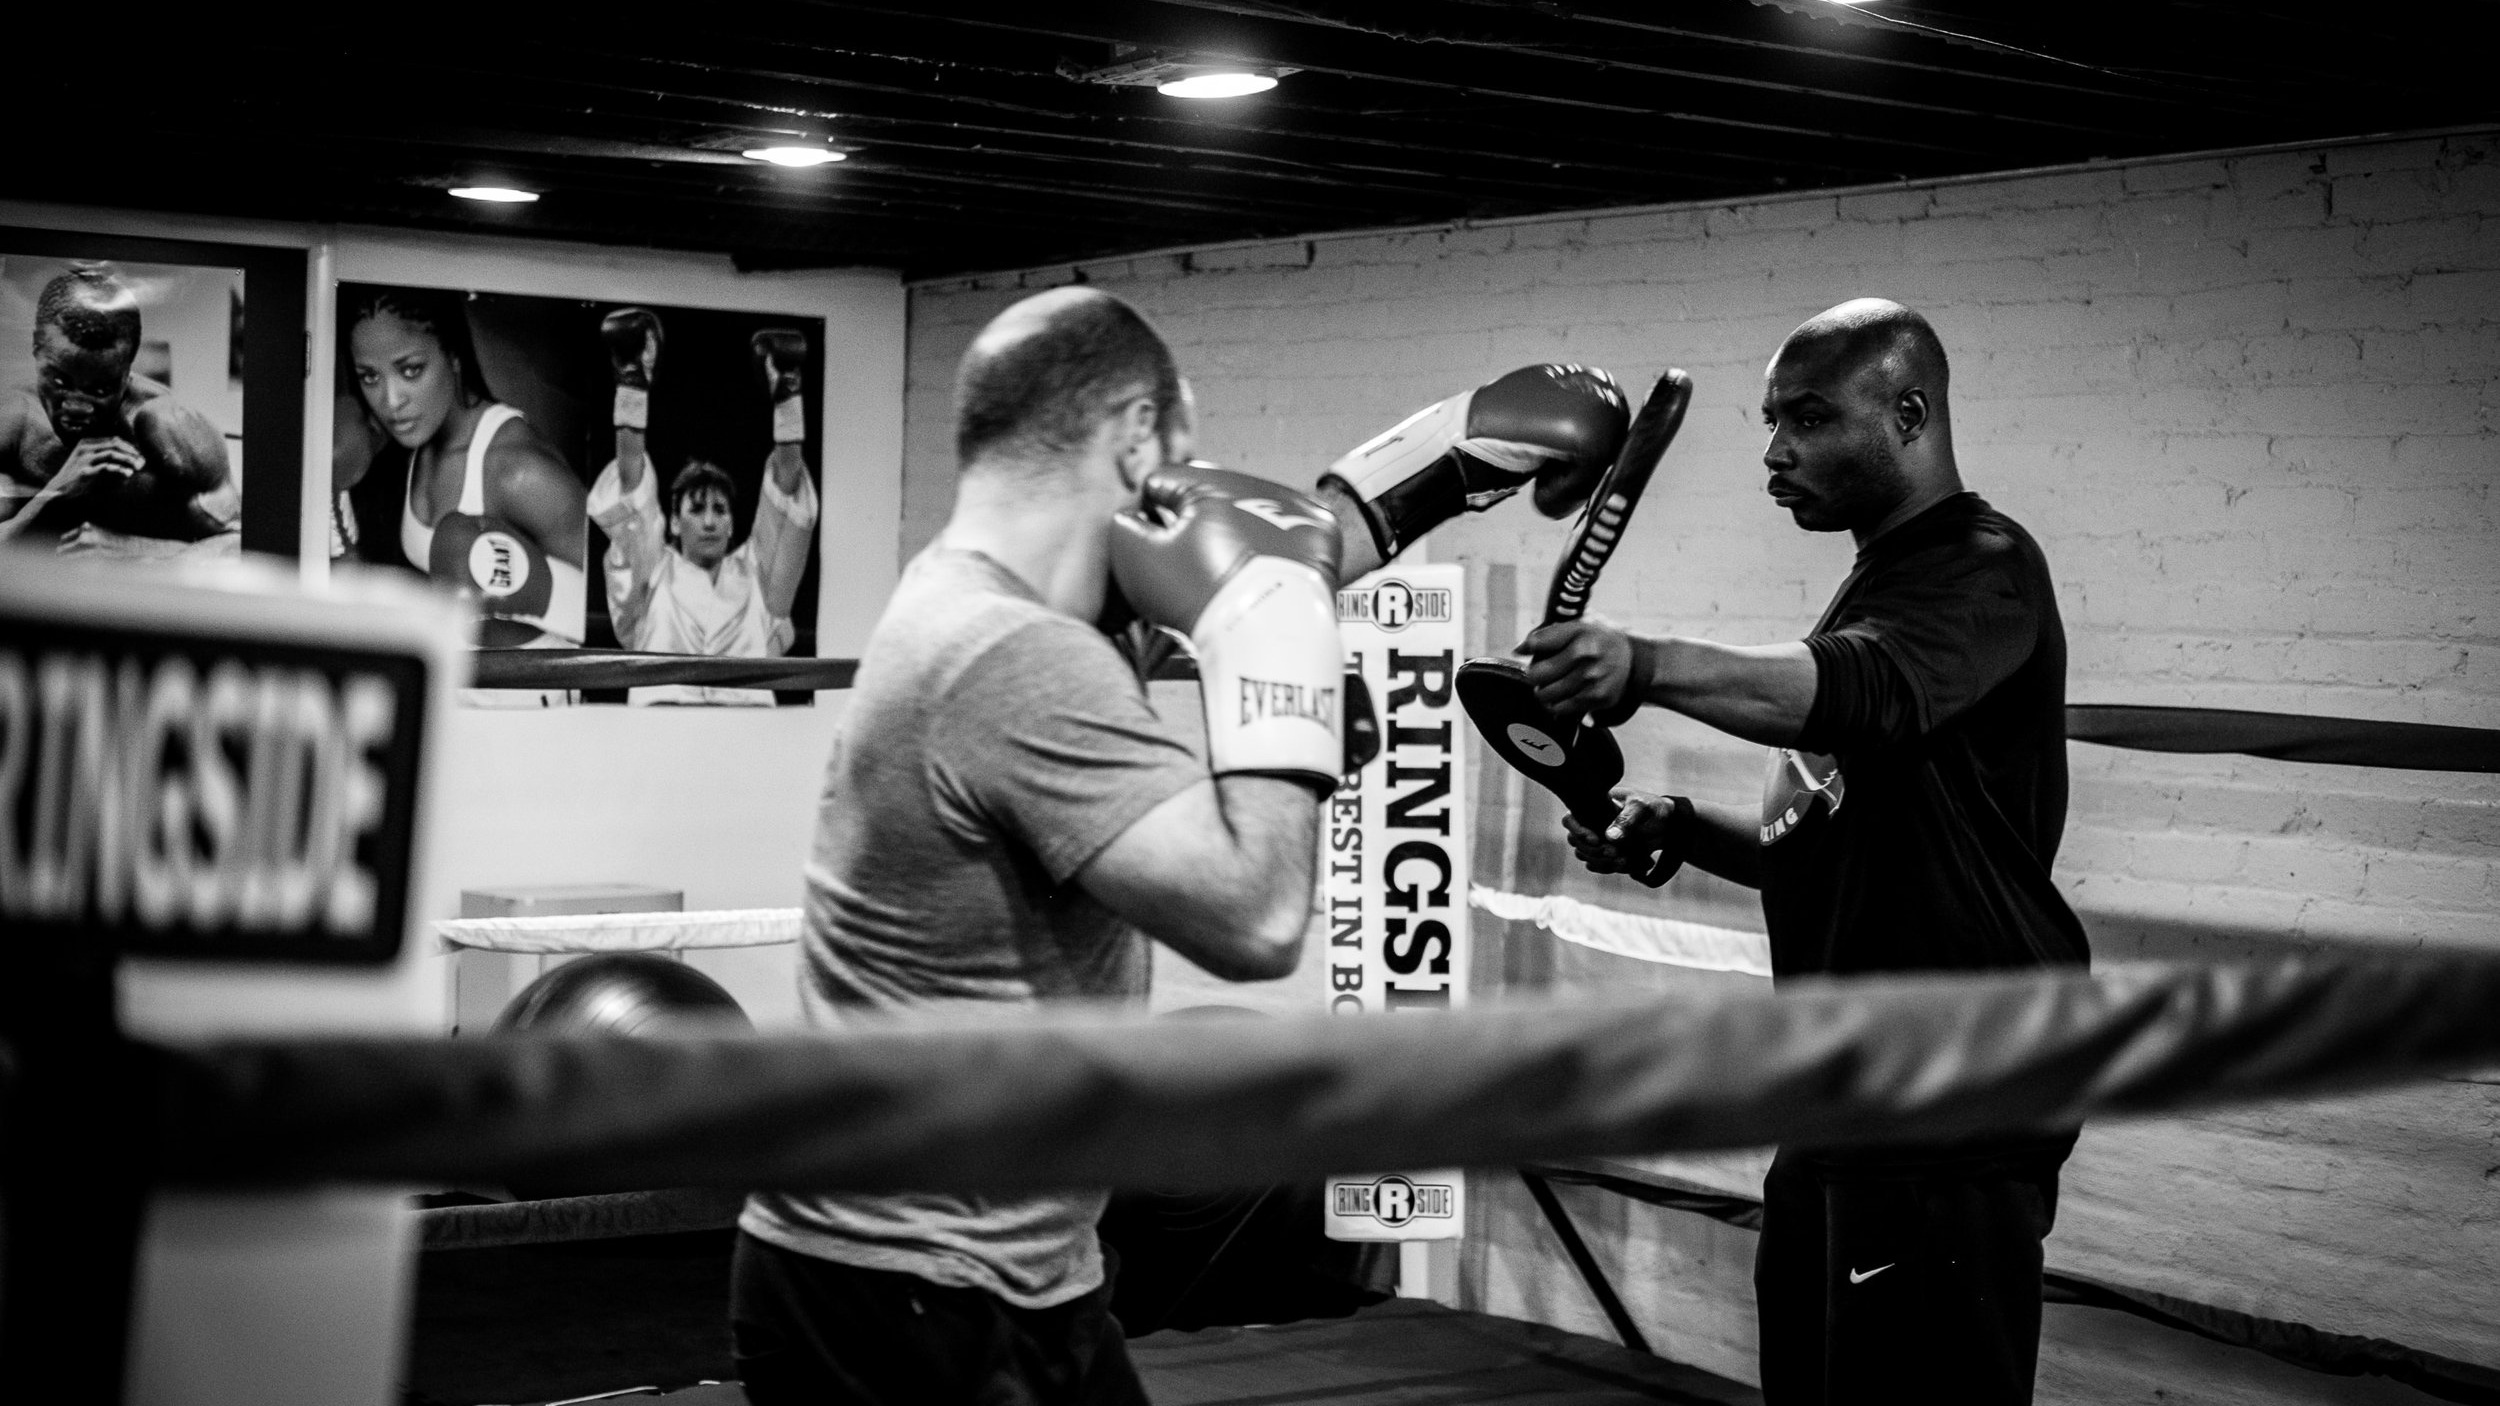 Private Boxing Sessions - One-on-one training with active fighters, whether you're looking to go pro or just get in shape!Click here to learn more.